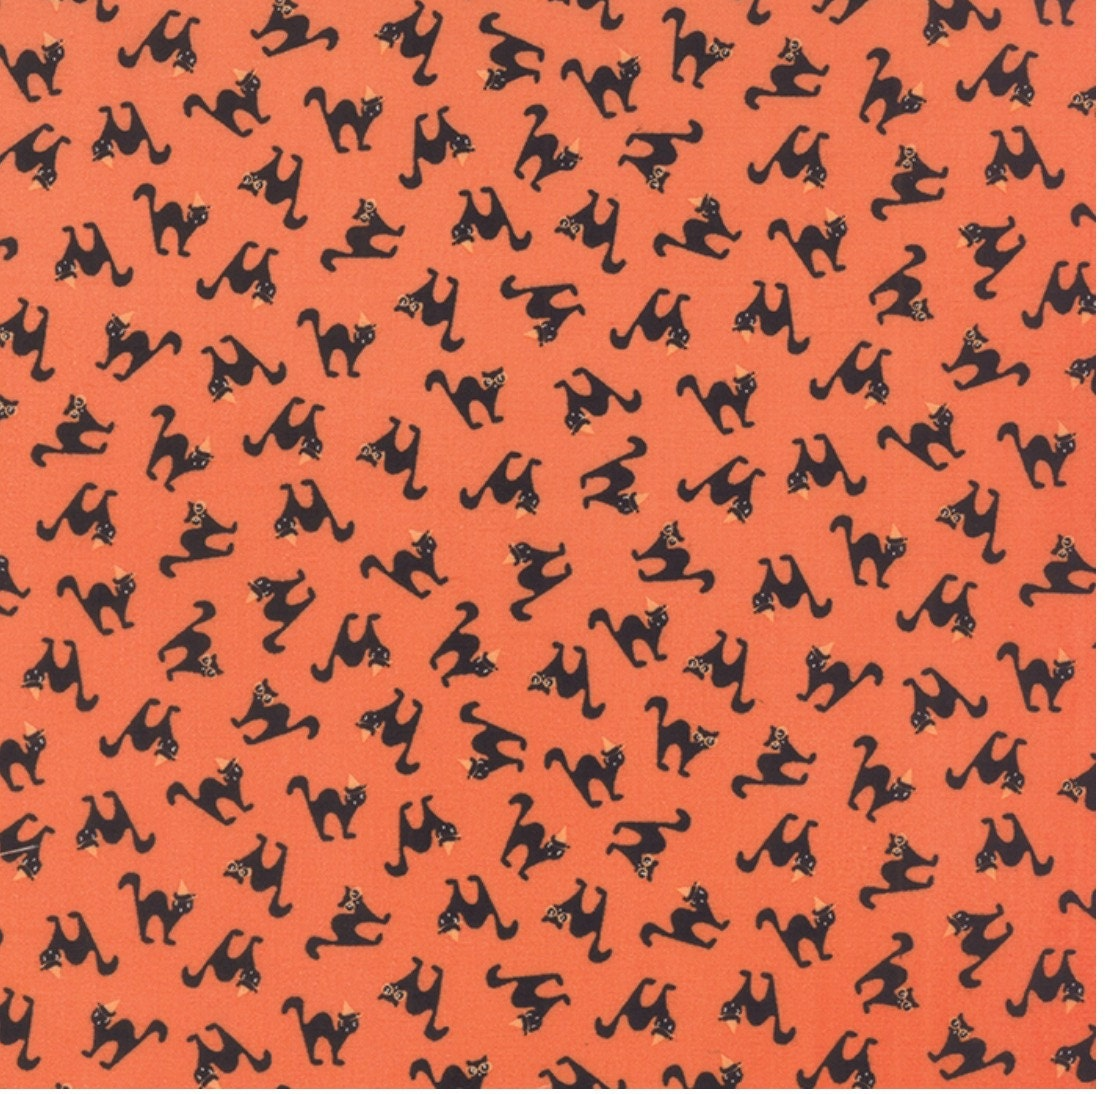 Spooky Delights cotton fabric by Bunny Hill Designs for Moda